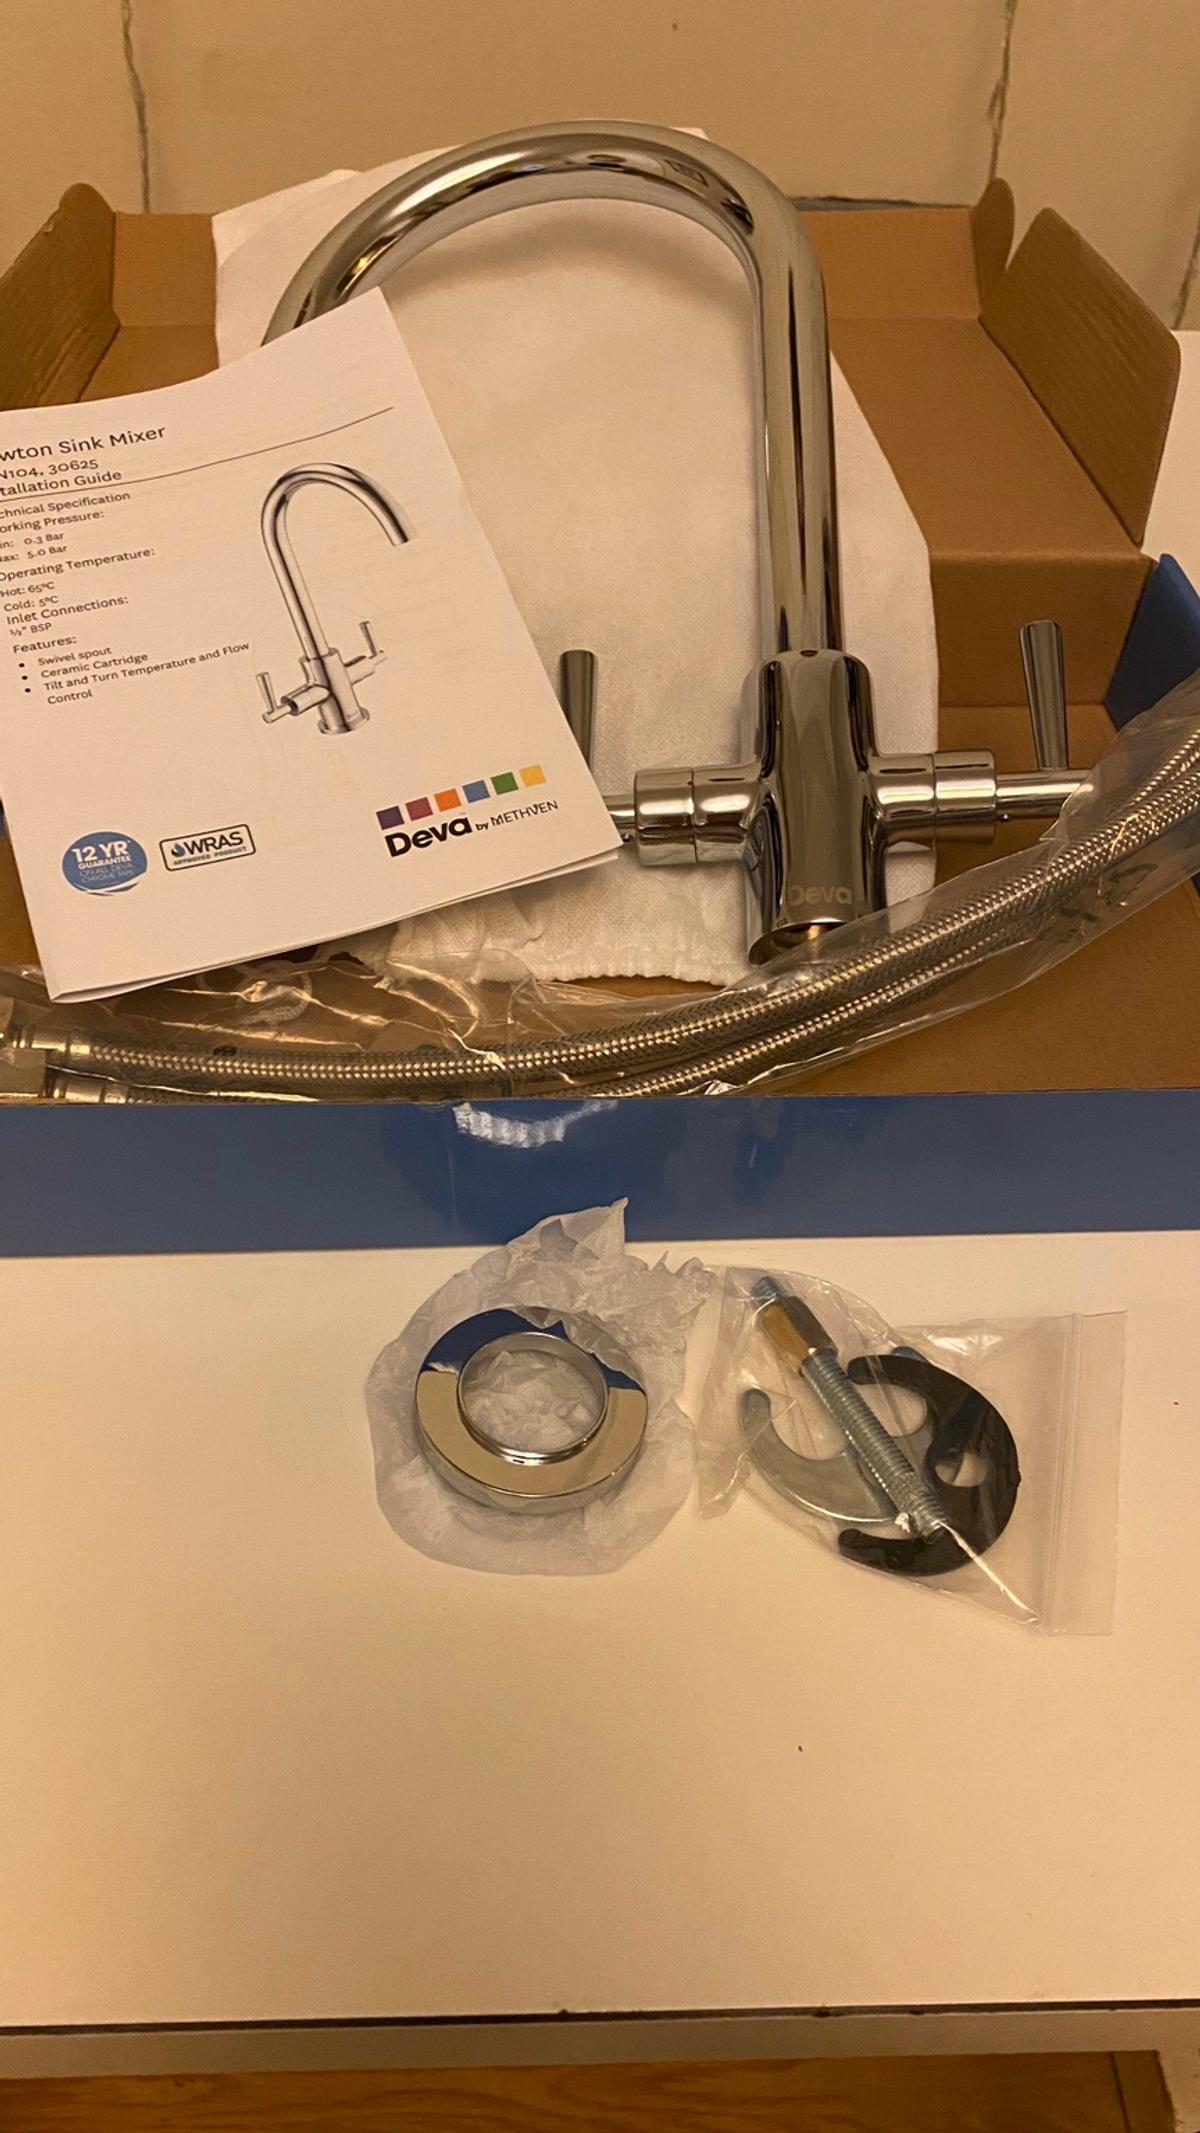 Brand new sink tap mixer, complete with flexi connectors, sitting ring and under sink mount brackets.